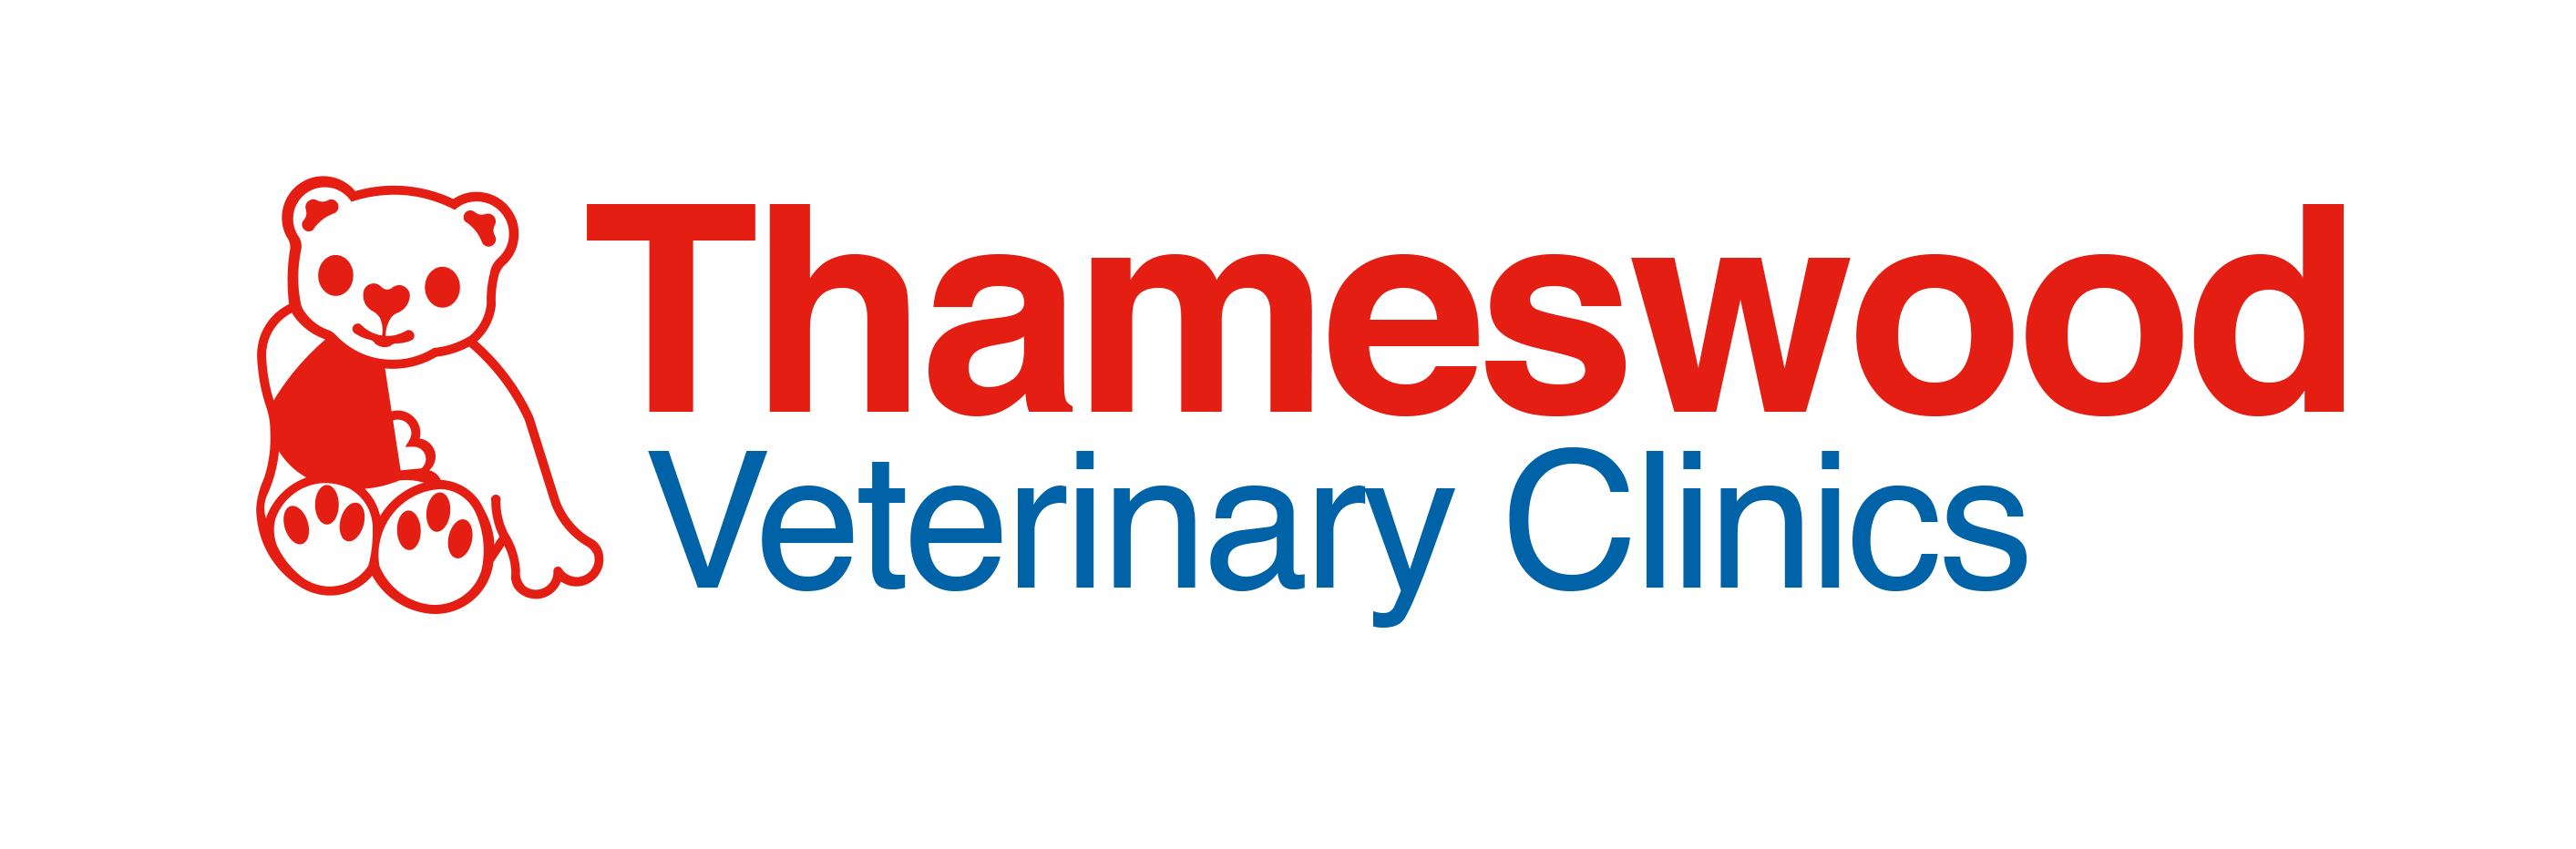 Thameswood Veterinary Clinic - Royal Wootton Bassett